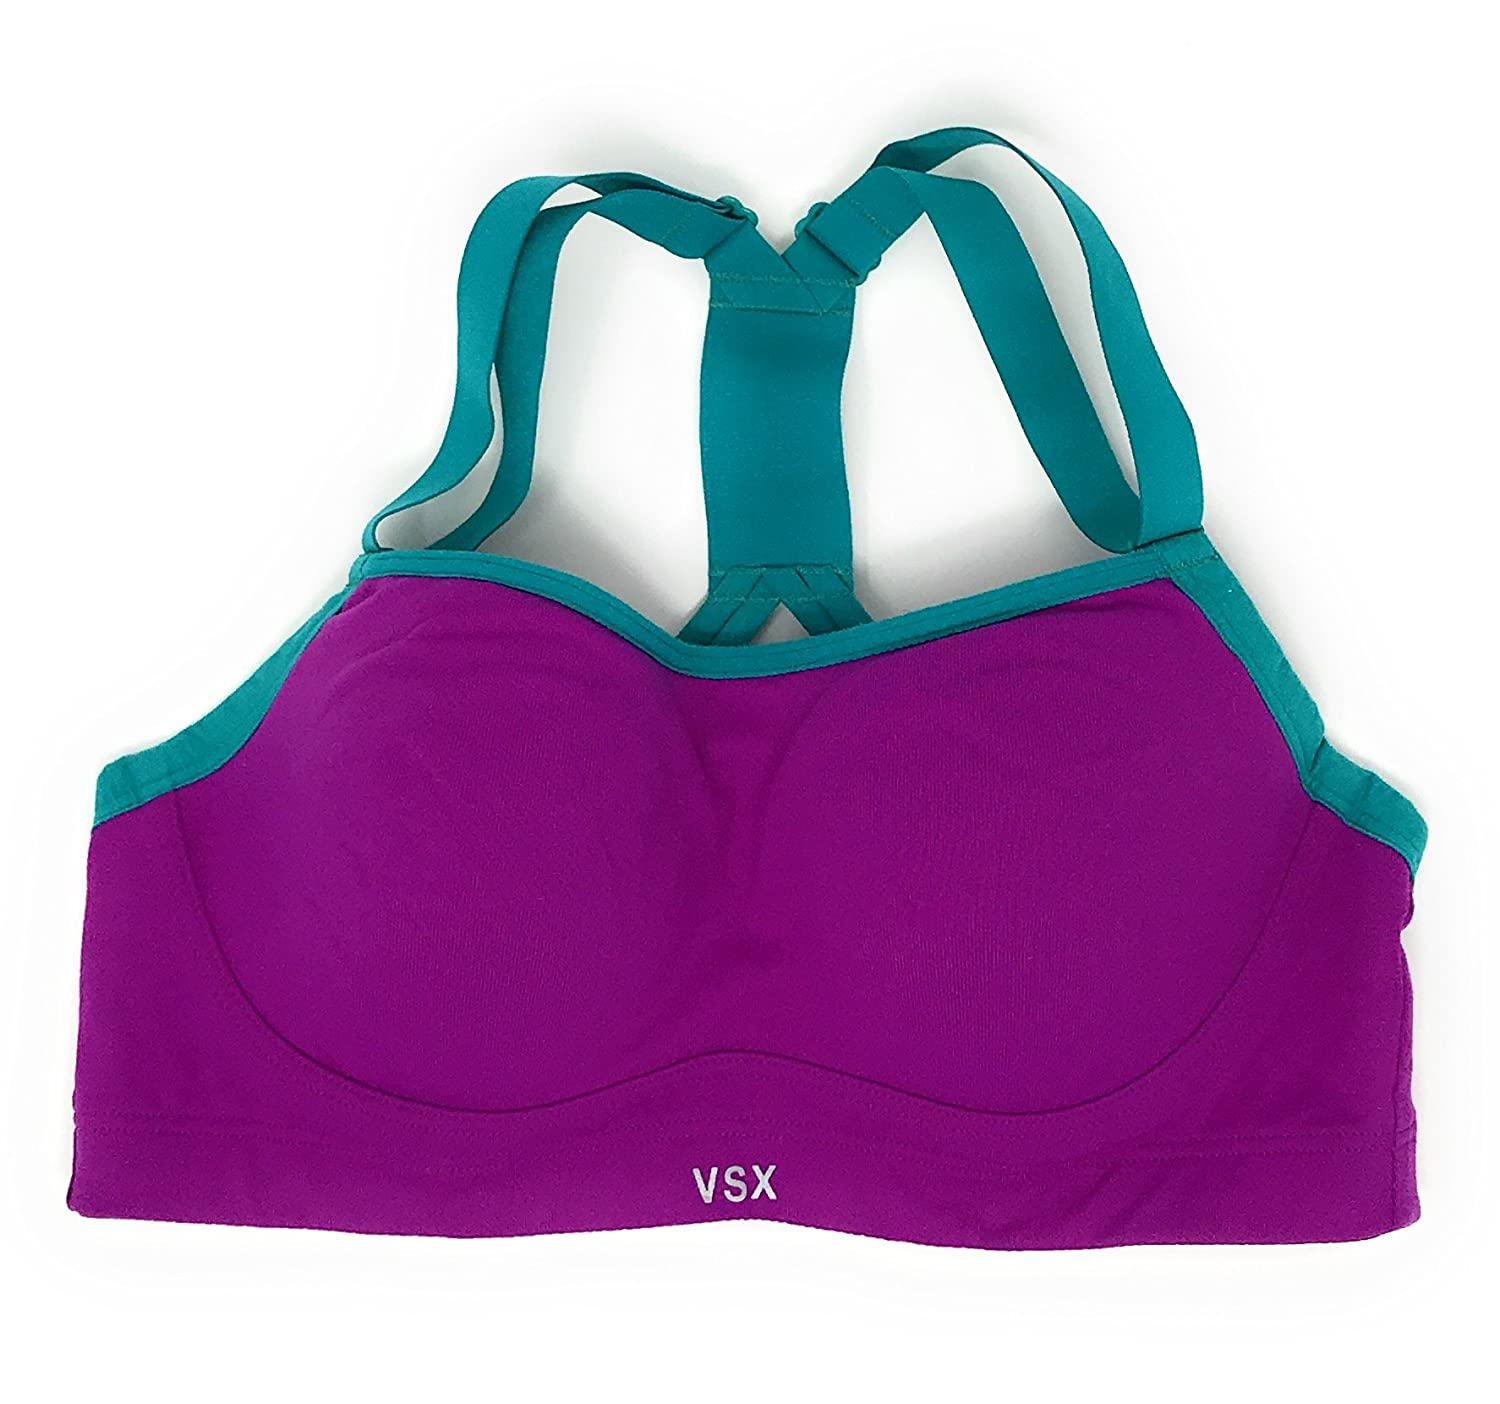 c929a358e4 Victoria s Secret Angel Sports Bra Adjustable Straps at Amazon Women s  Clothing store